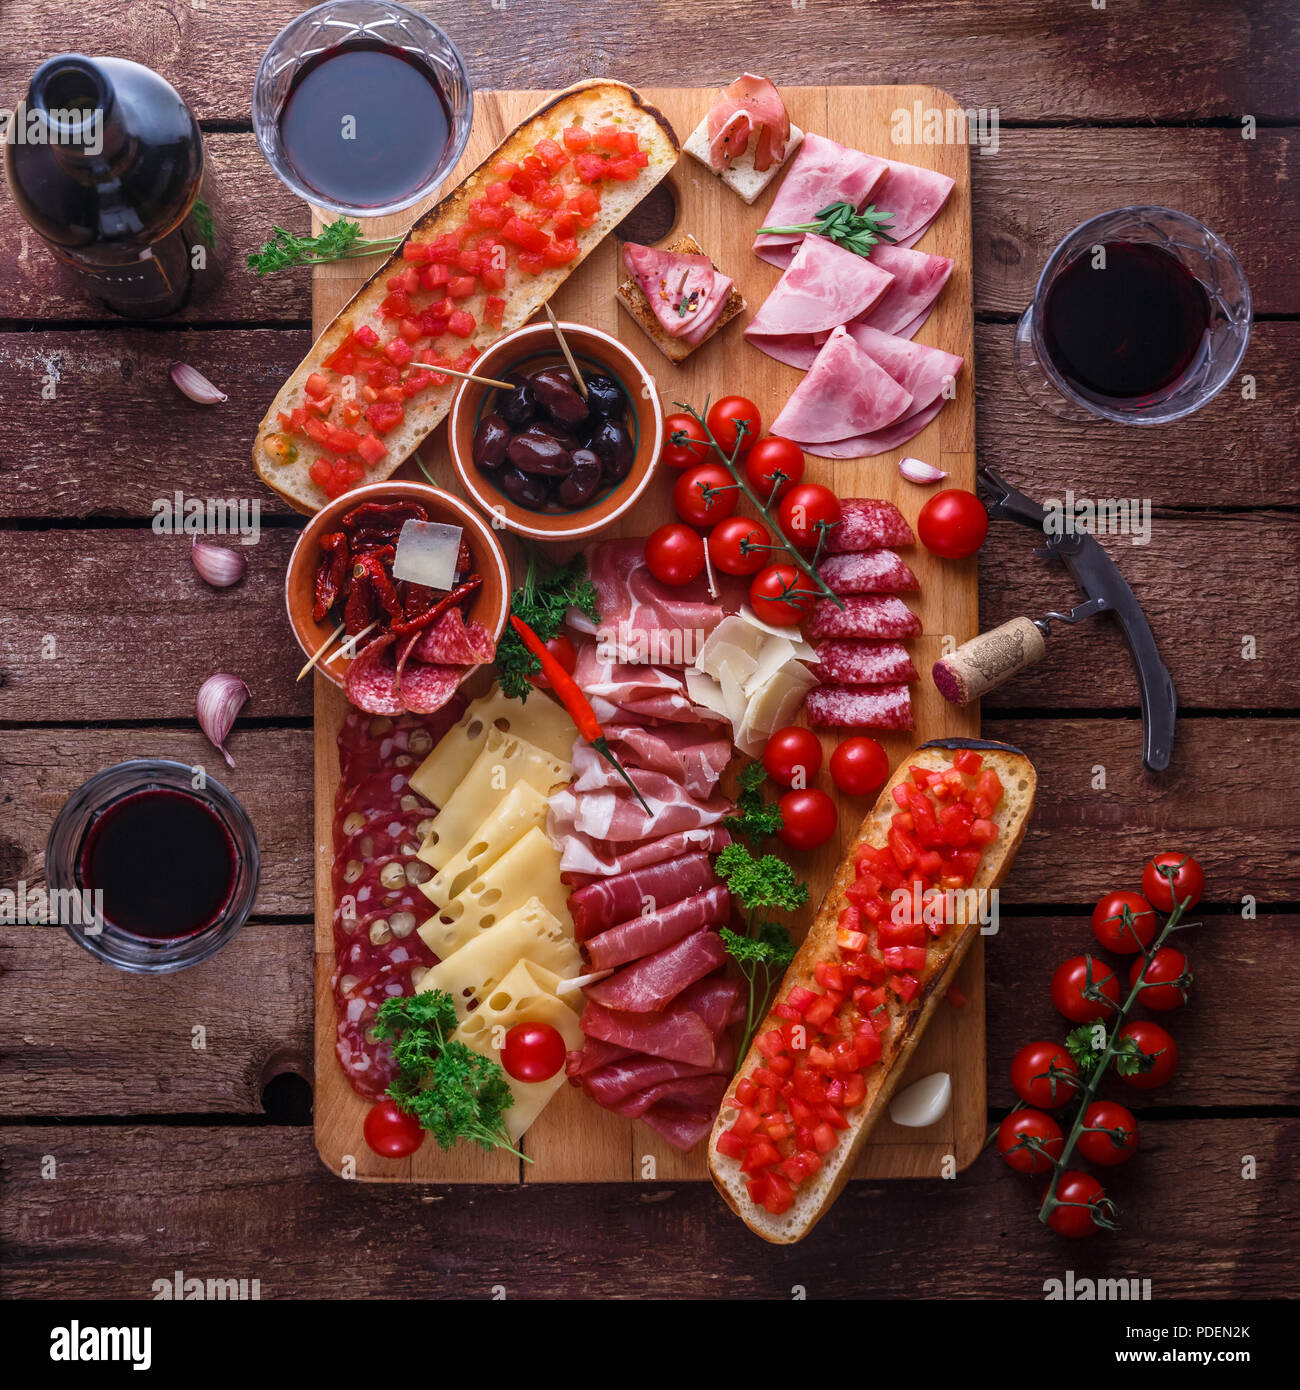 Red wine with charcuterie assortment on dark rustic table, flat lay - Stock Image